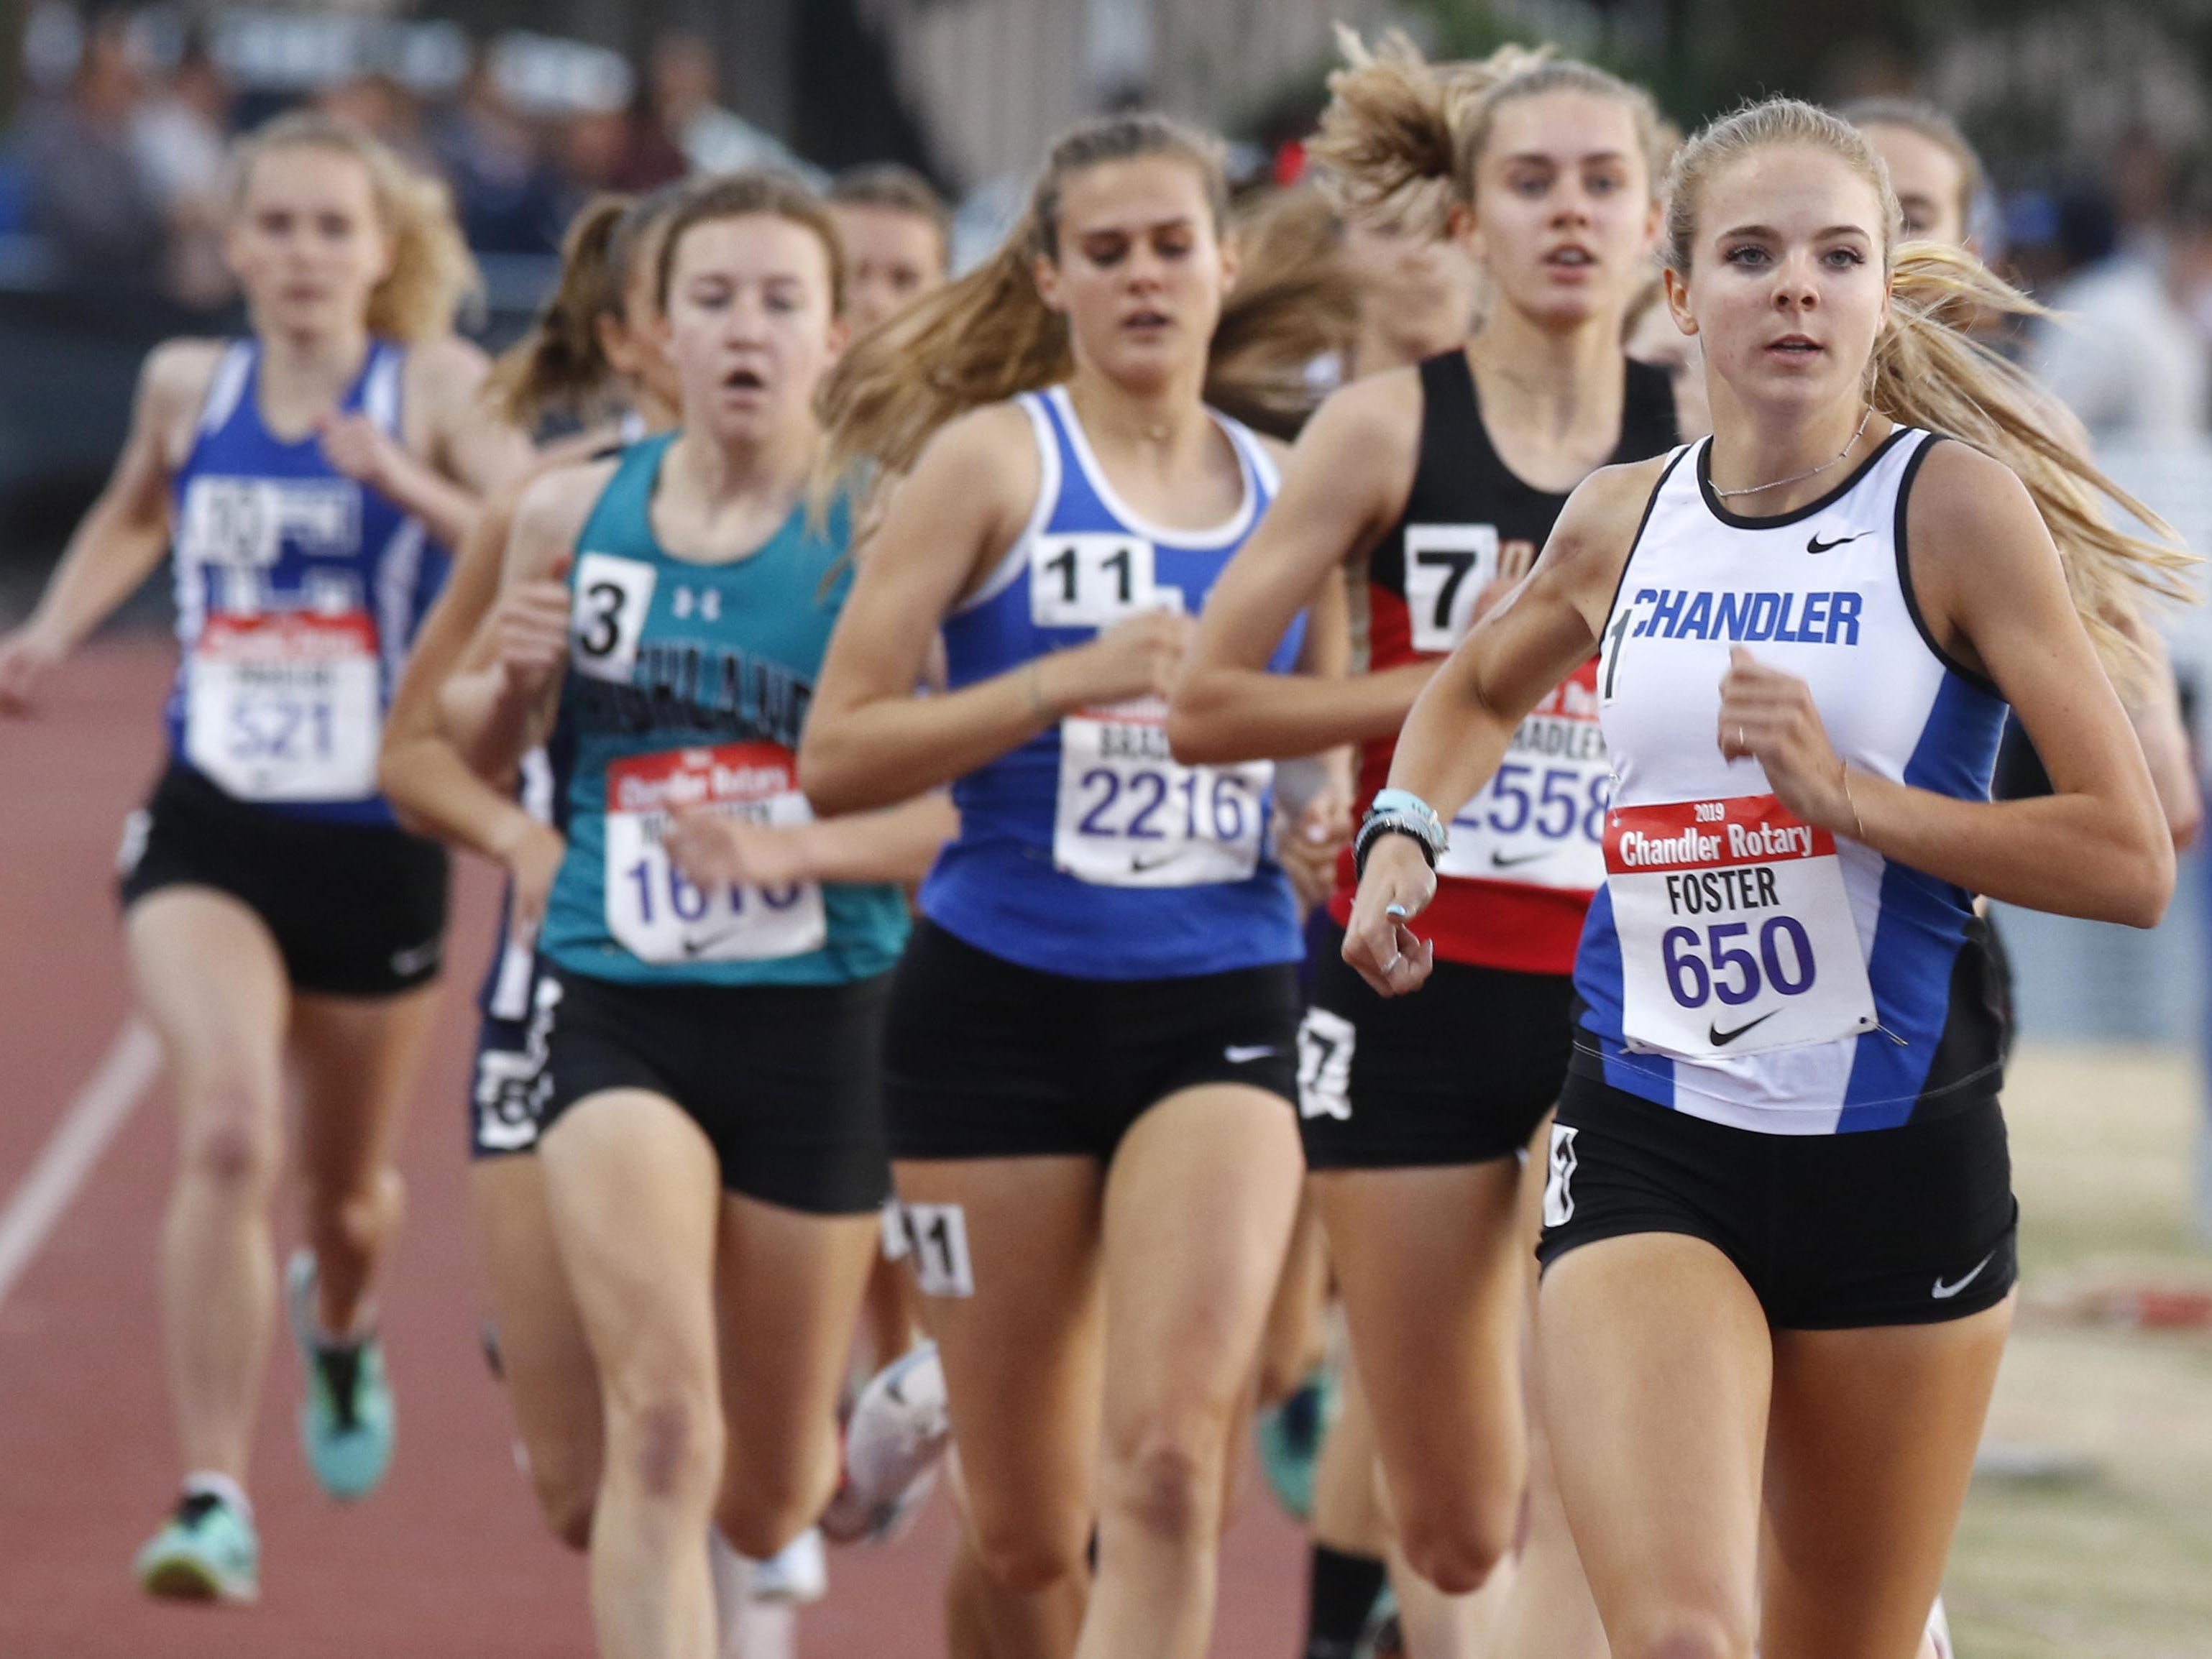 Chandler's Morgan Foster leads the pack after the first lap of the mile run during the 79th Annual Nike Chandler Rotary Invitational  March 23, 2019.